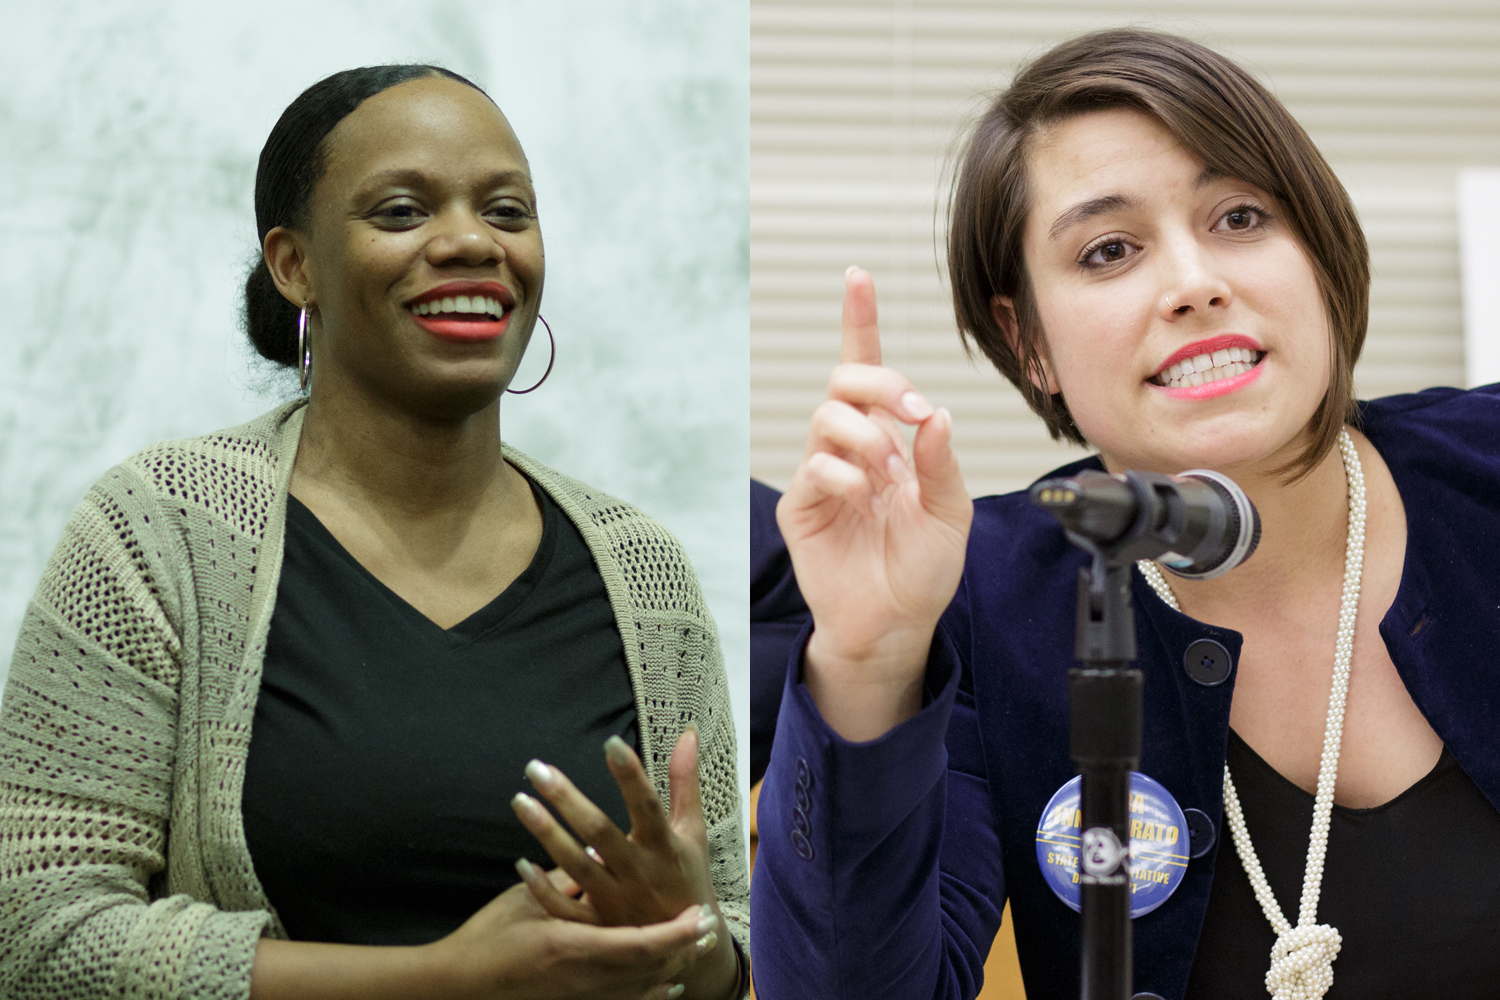 Summer Lee (left), contender for Pennsylvania's State House District 34, and Sara Innamorato (right), contender for the District 21 seat, will run unopposed in their respective districts in the upcoming November general election. (TPN File Photo)